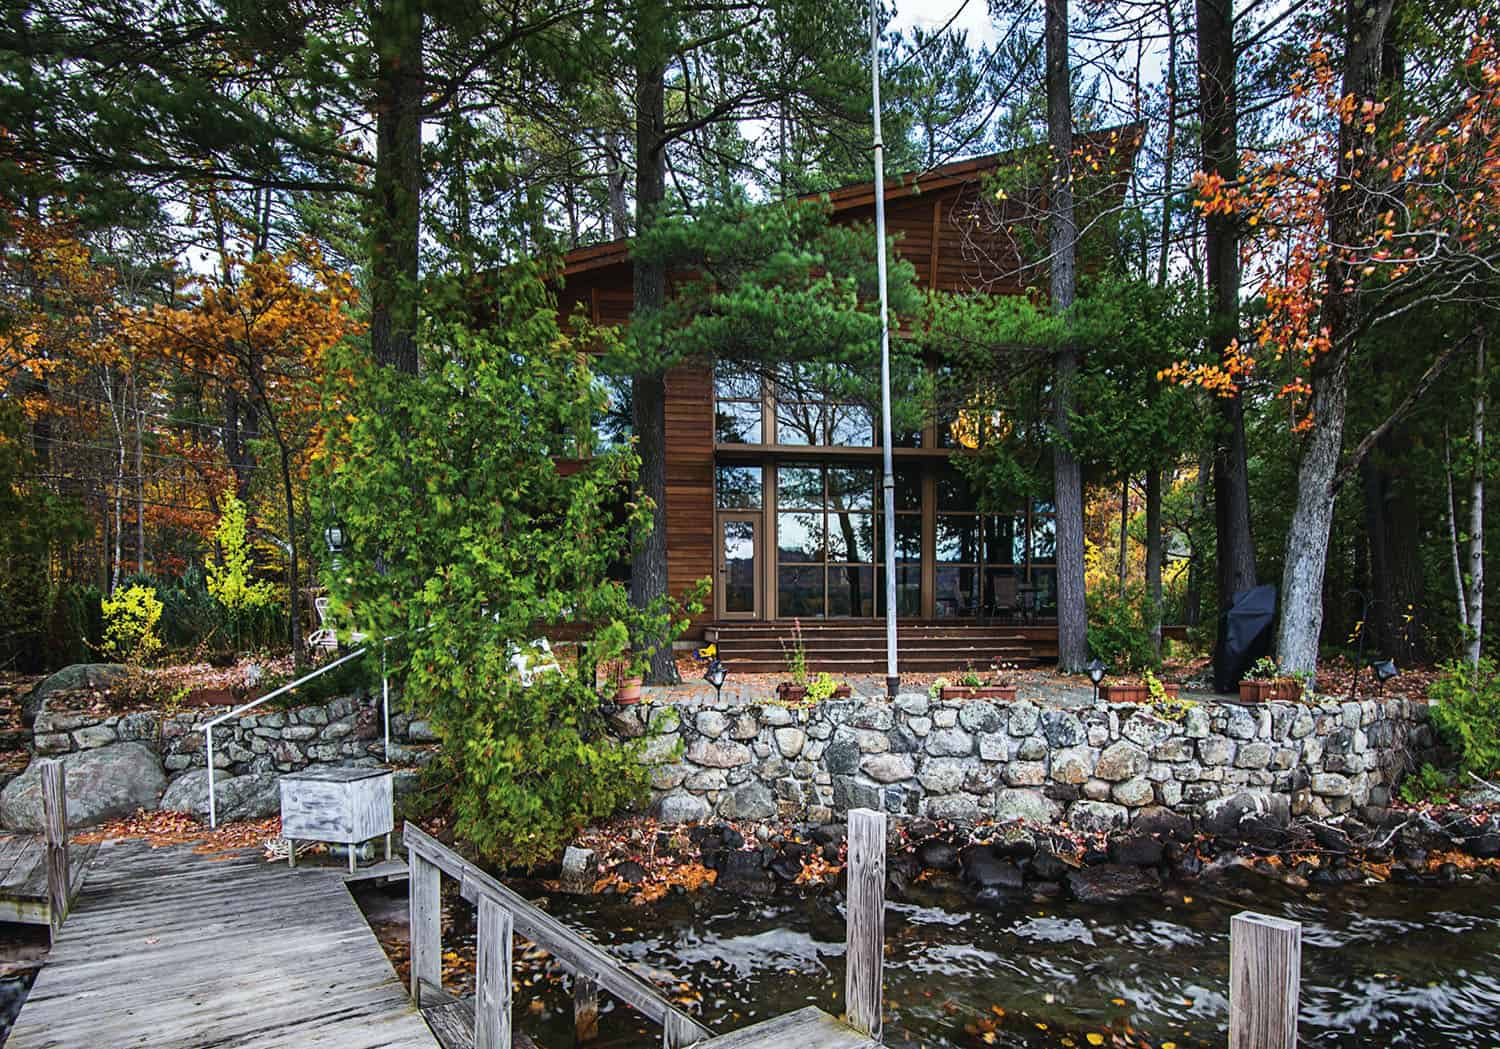 Glass lake house provides ultimate getaway in the Adirondack Mountains